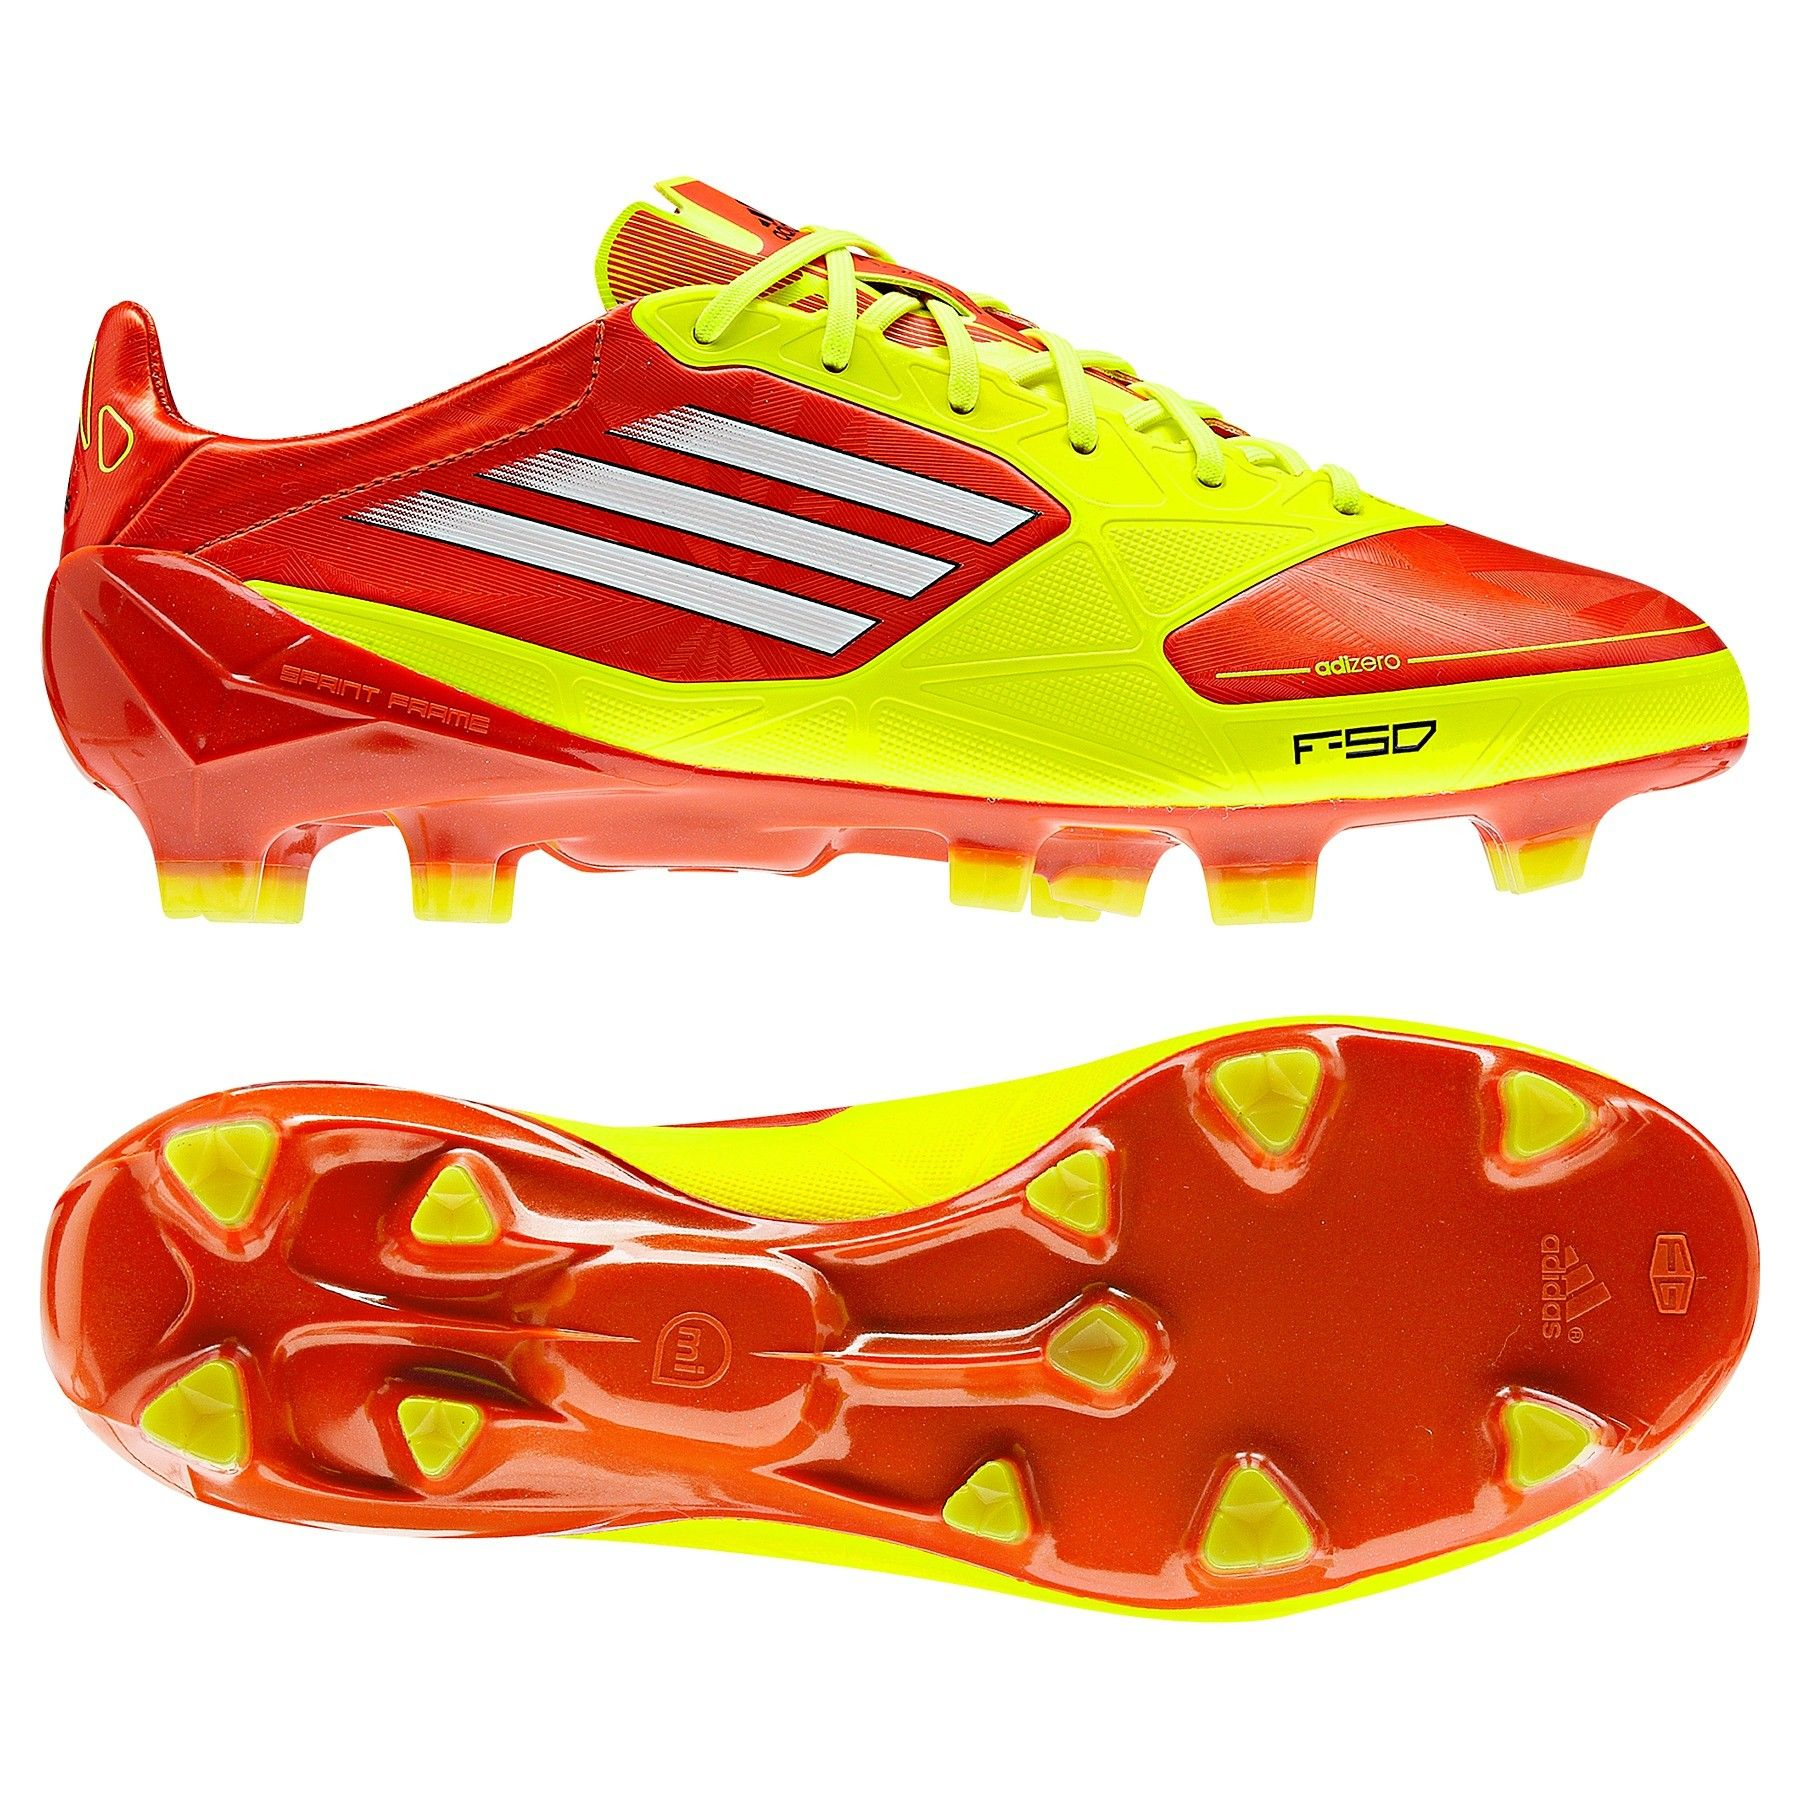 Adidas Kid S F50 Adizero Trx Firmground Soccer Shoes